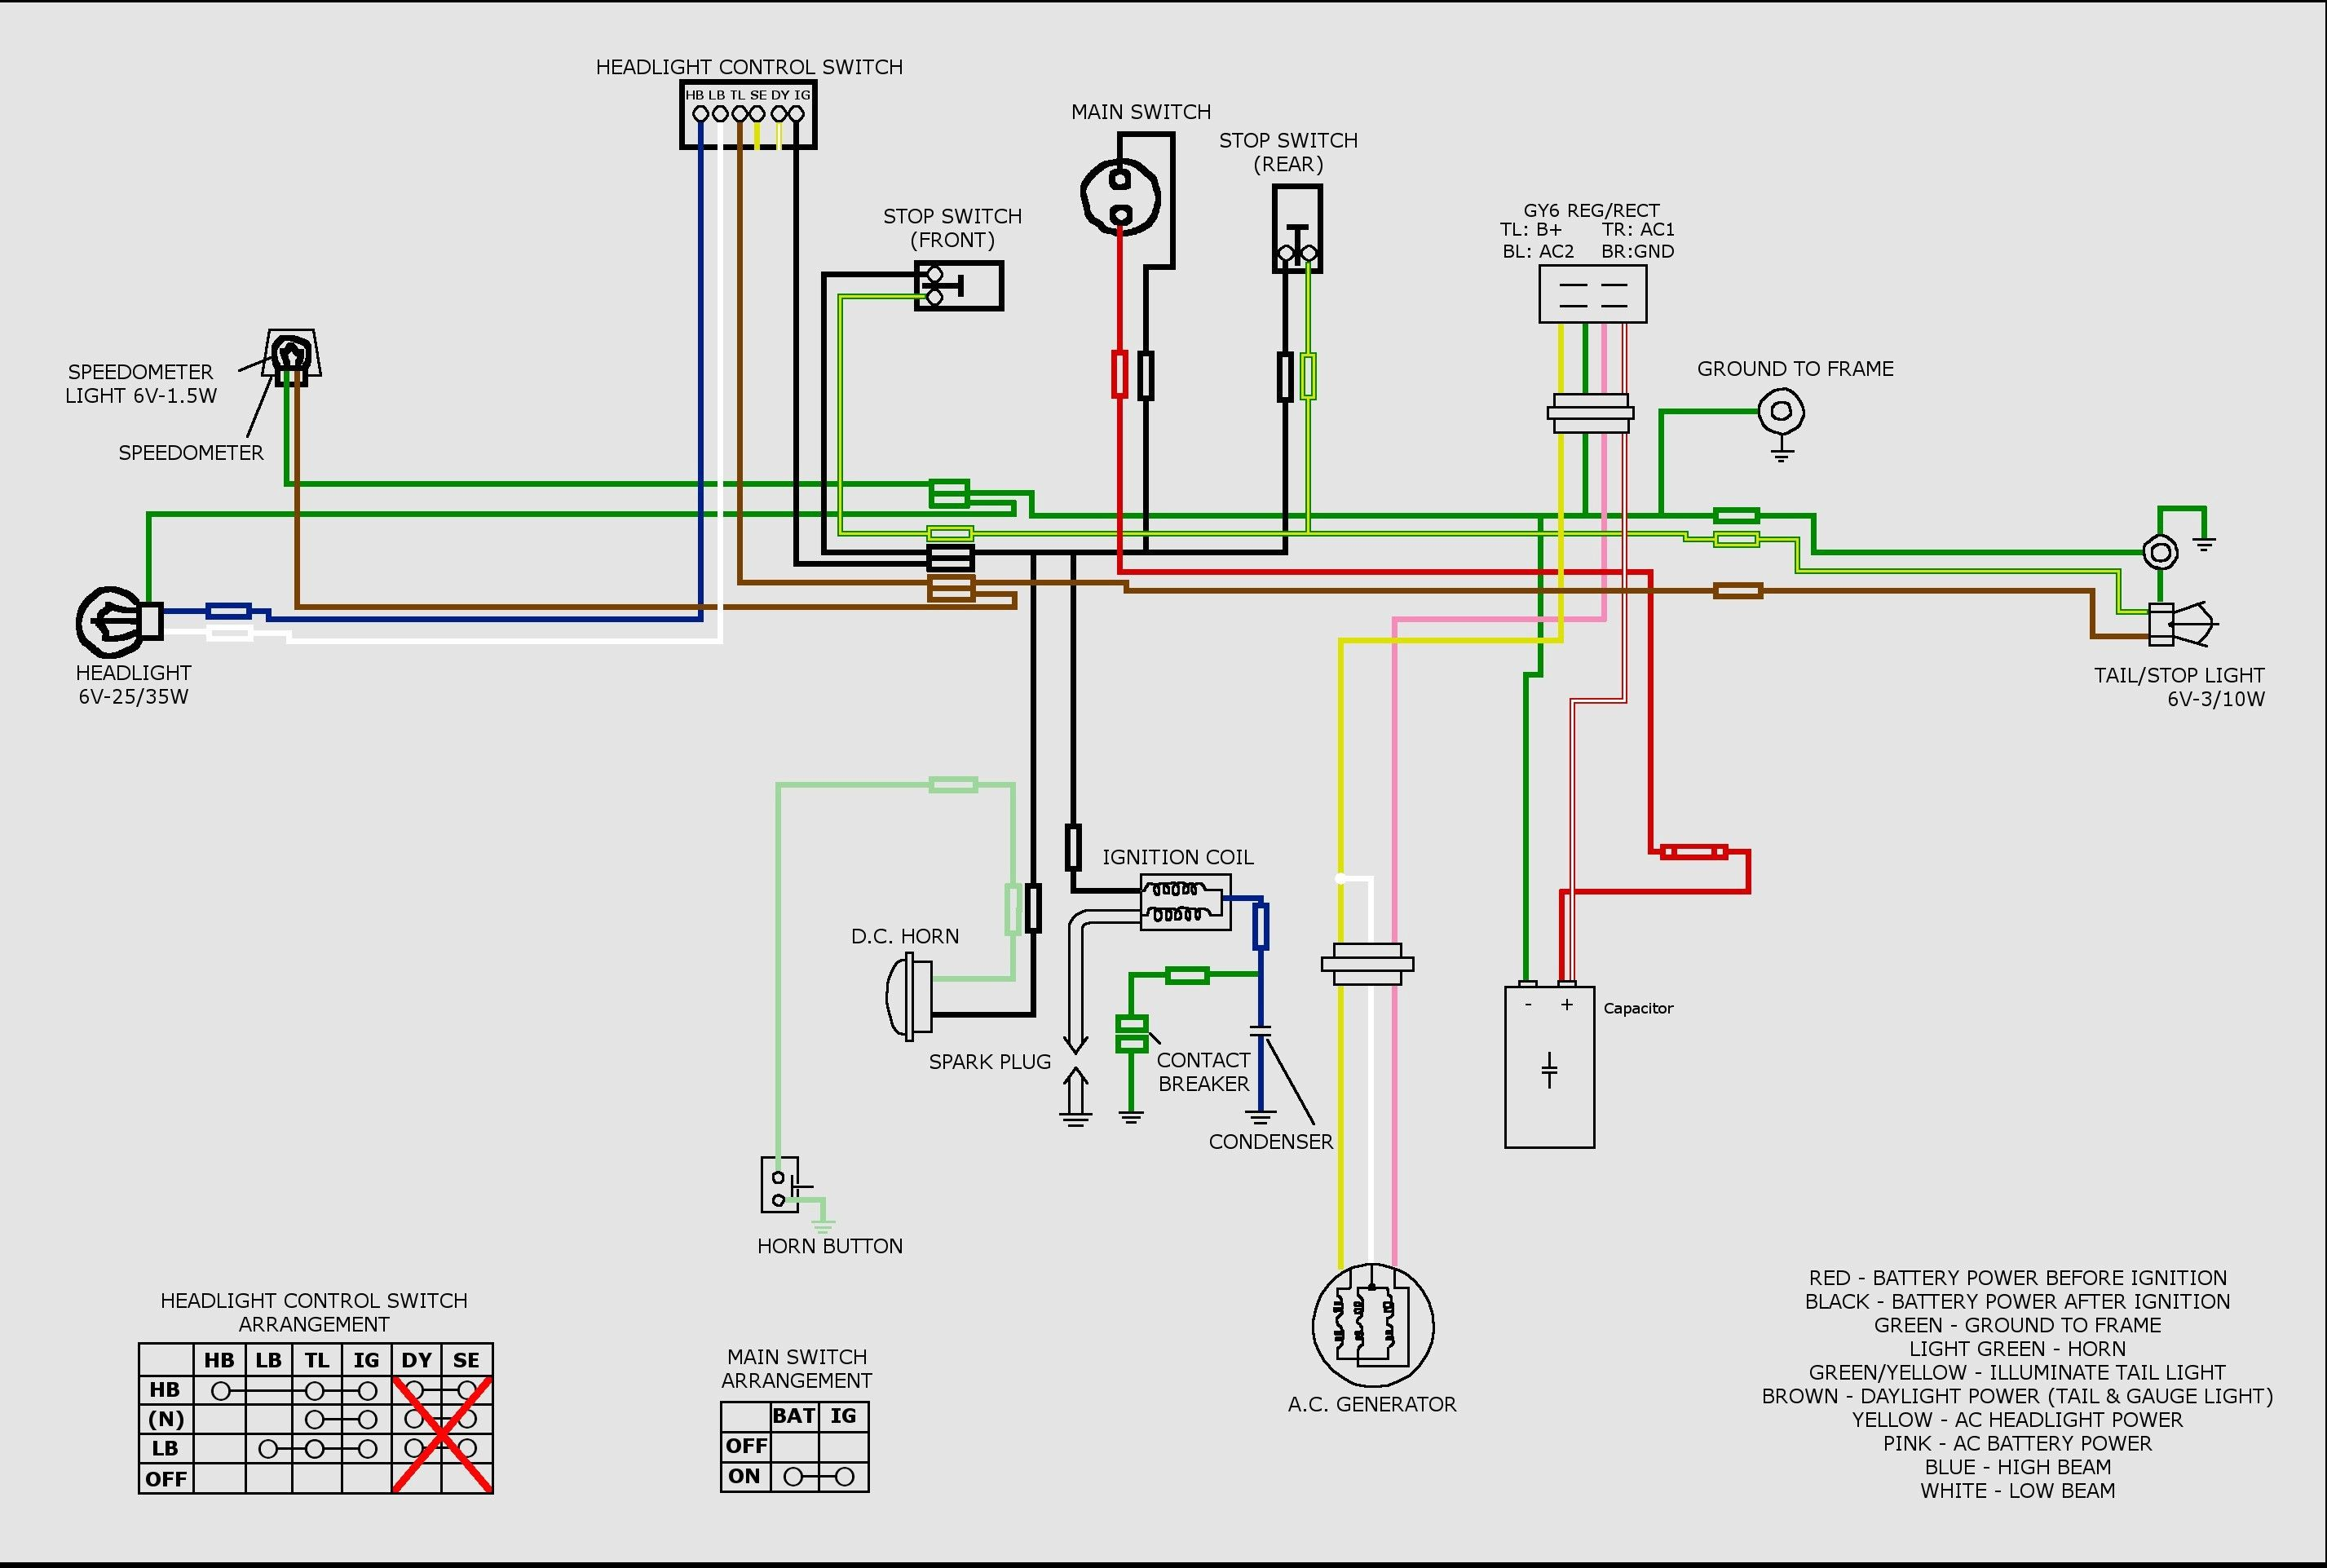 47cc wiring diagram wiring diagram47cc wiring diagram 8 [ 2854 x 1923 Pixel ]